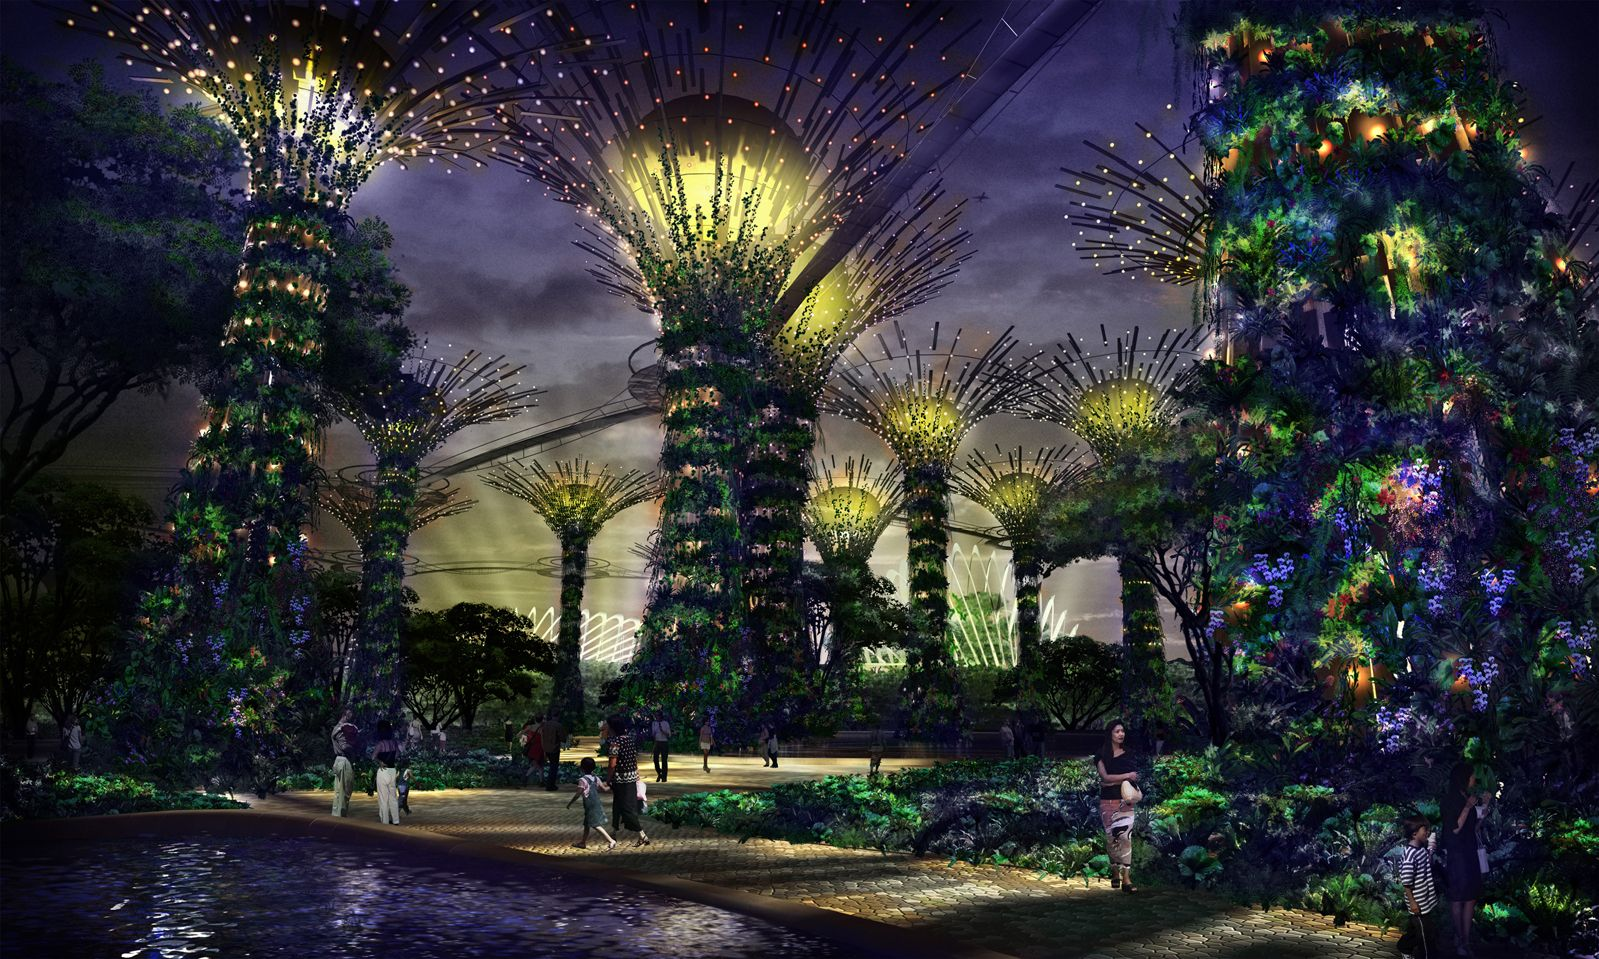 d81cfdb62feaaaaaf73f6574505c3efe - Gardens By The Bay Timings Light Show